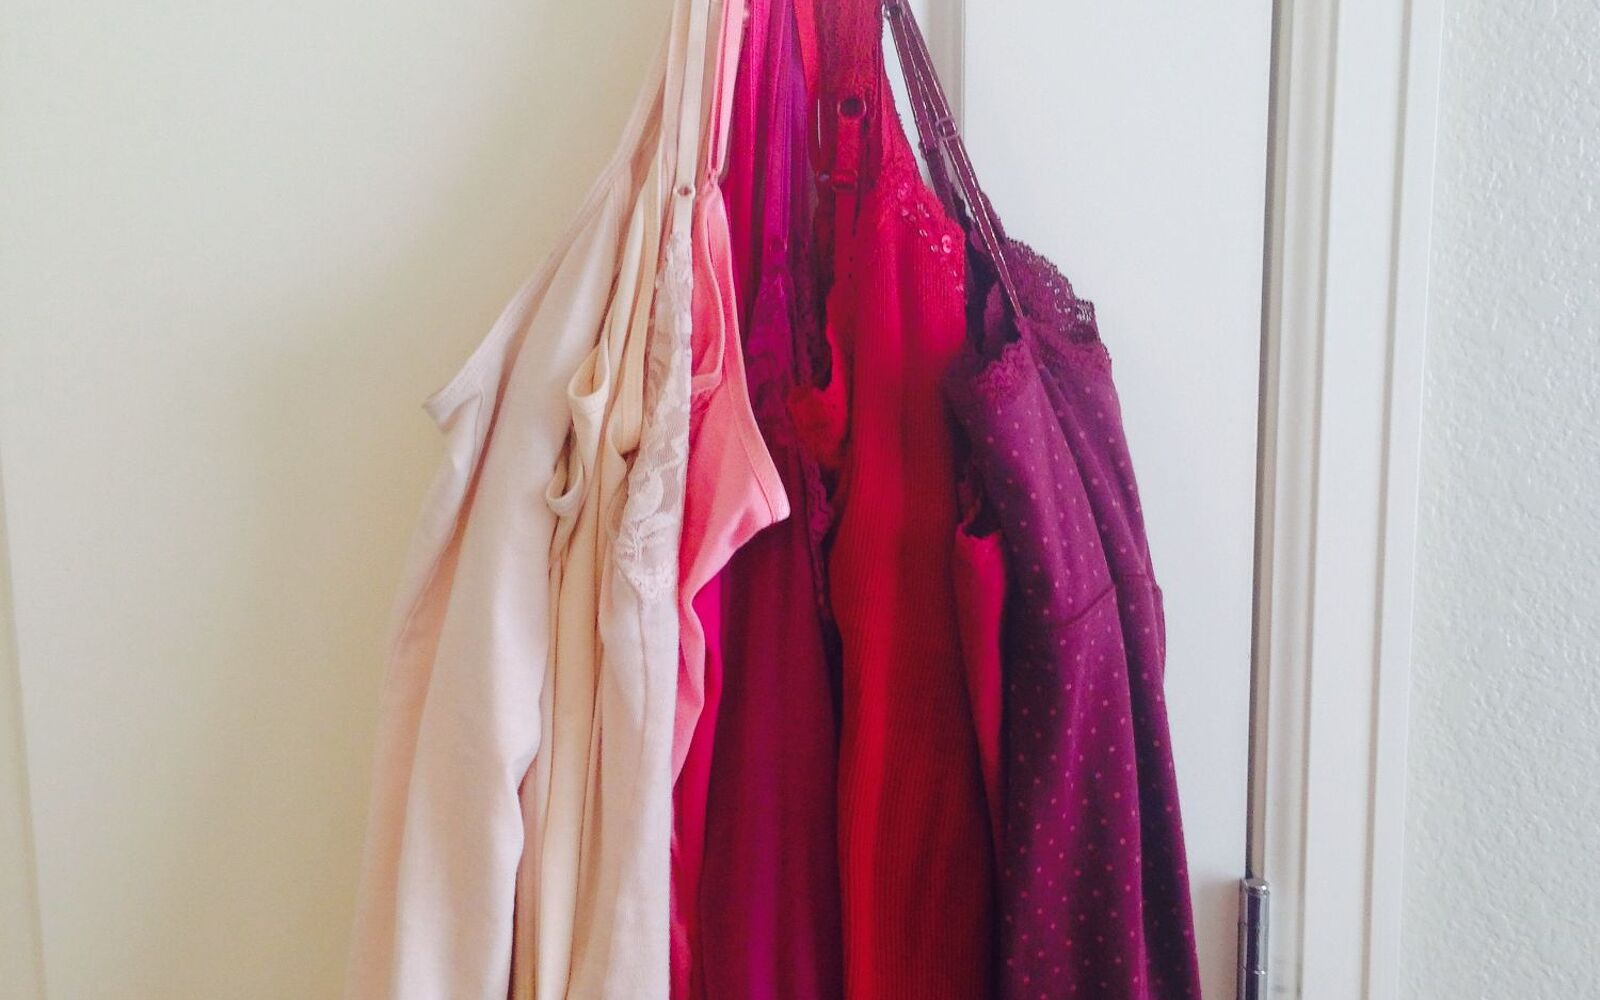 s post, Organize Your Camis With A Hook